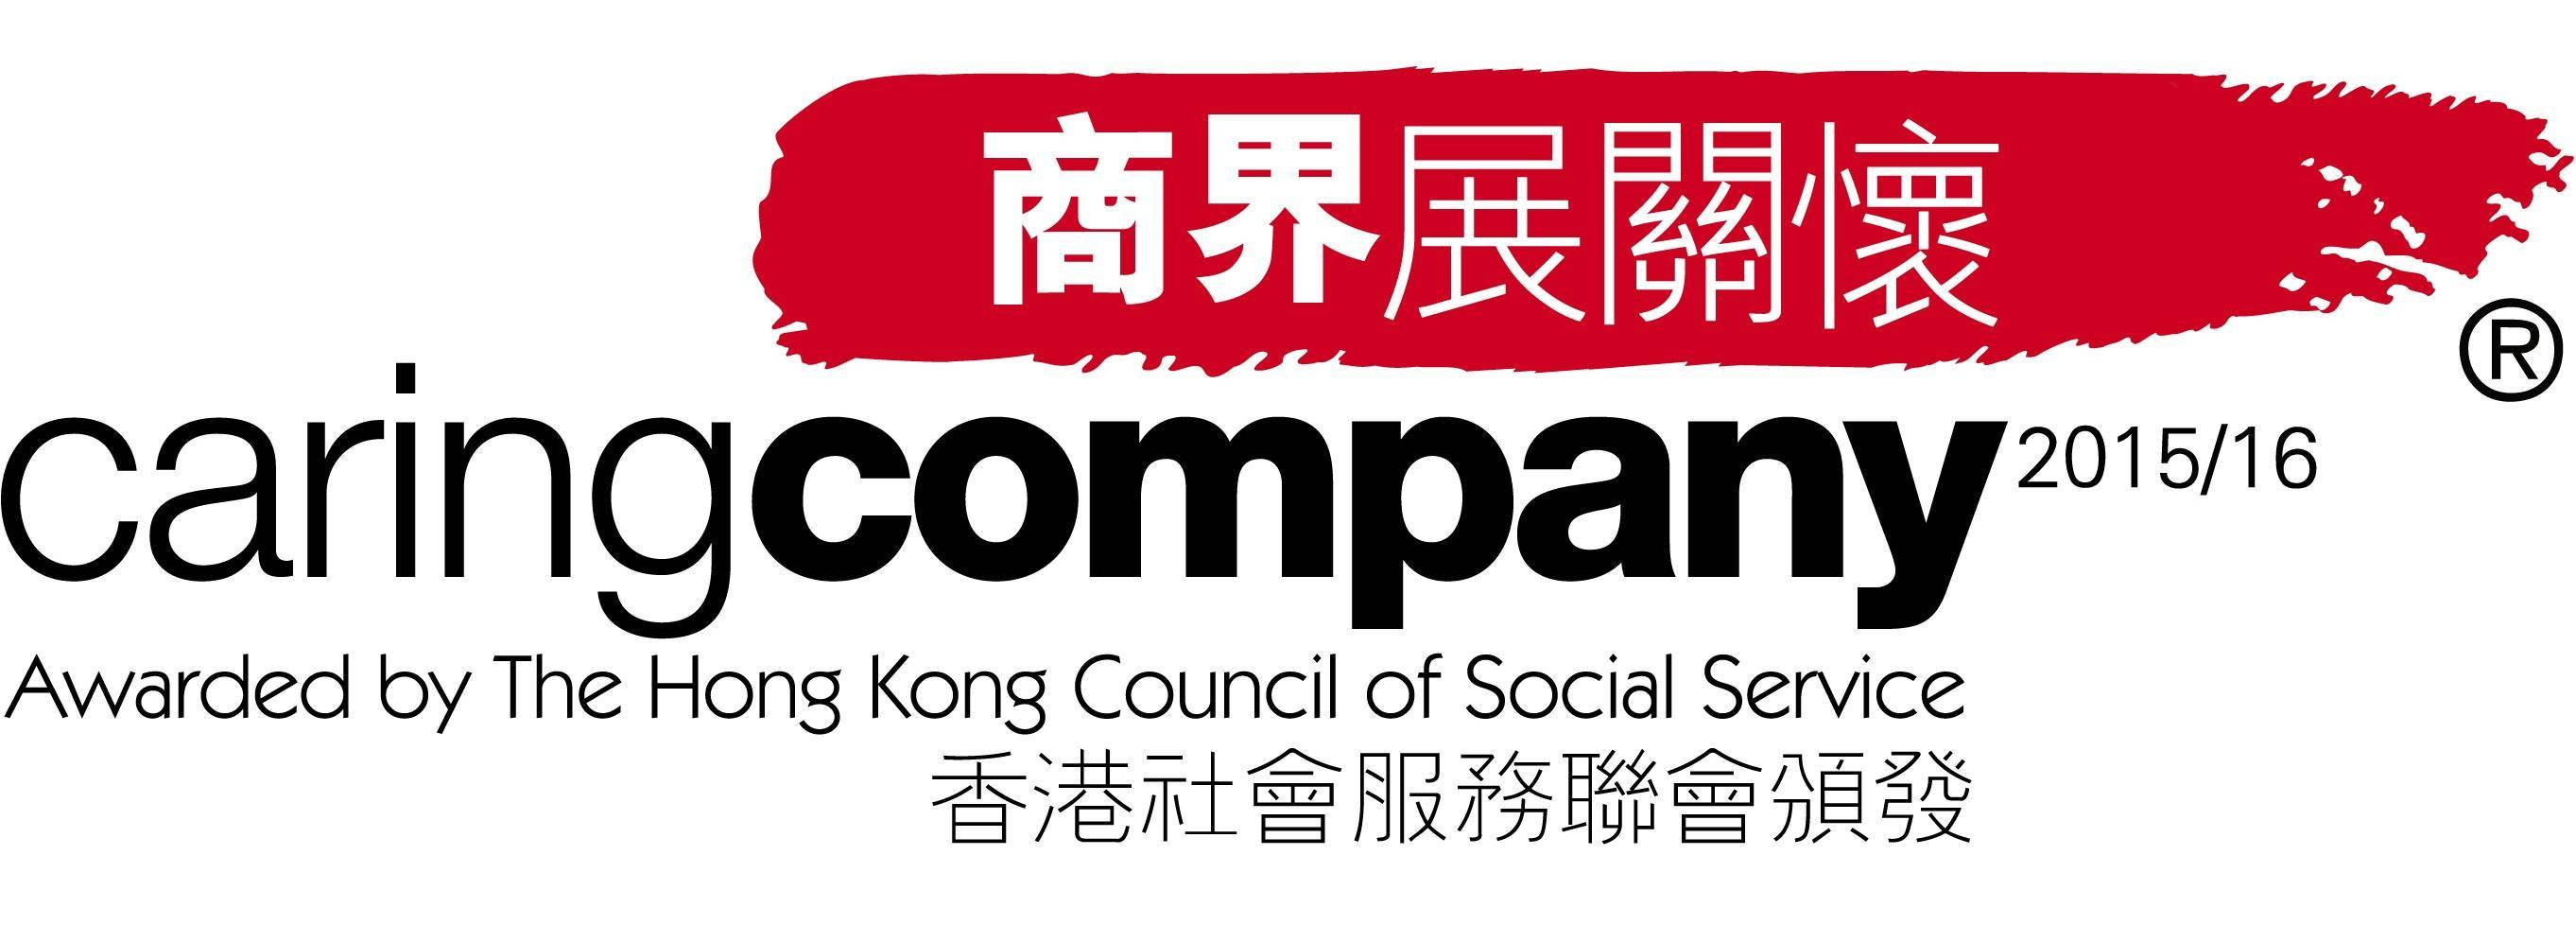 Hong Kong Council of Social Services